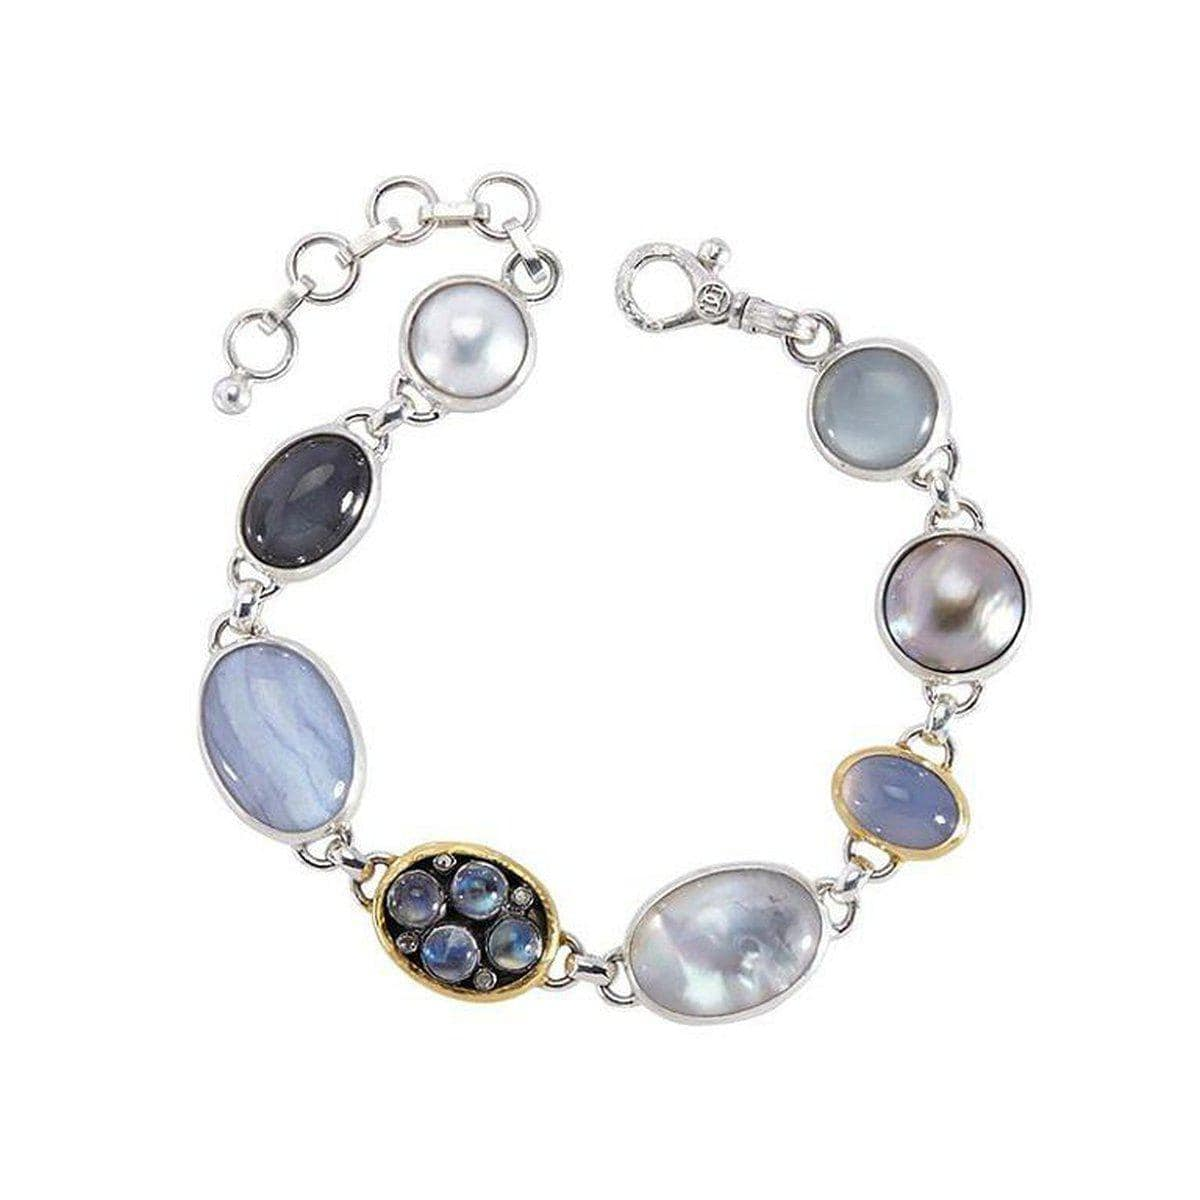 Copy of Galapagos Sterling Silver Multi Stone Bracelet - SB-U25919-MS-GURHAN-Renee Taylor Gallery